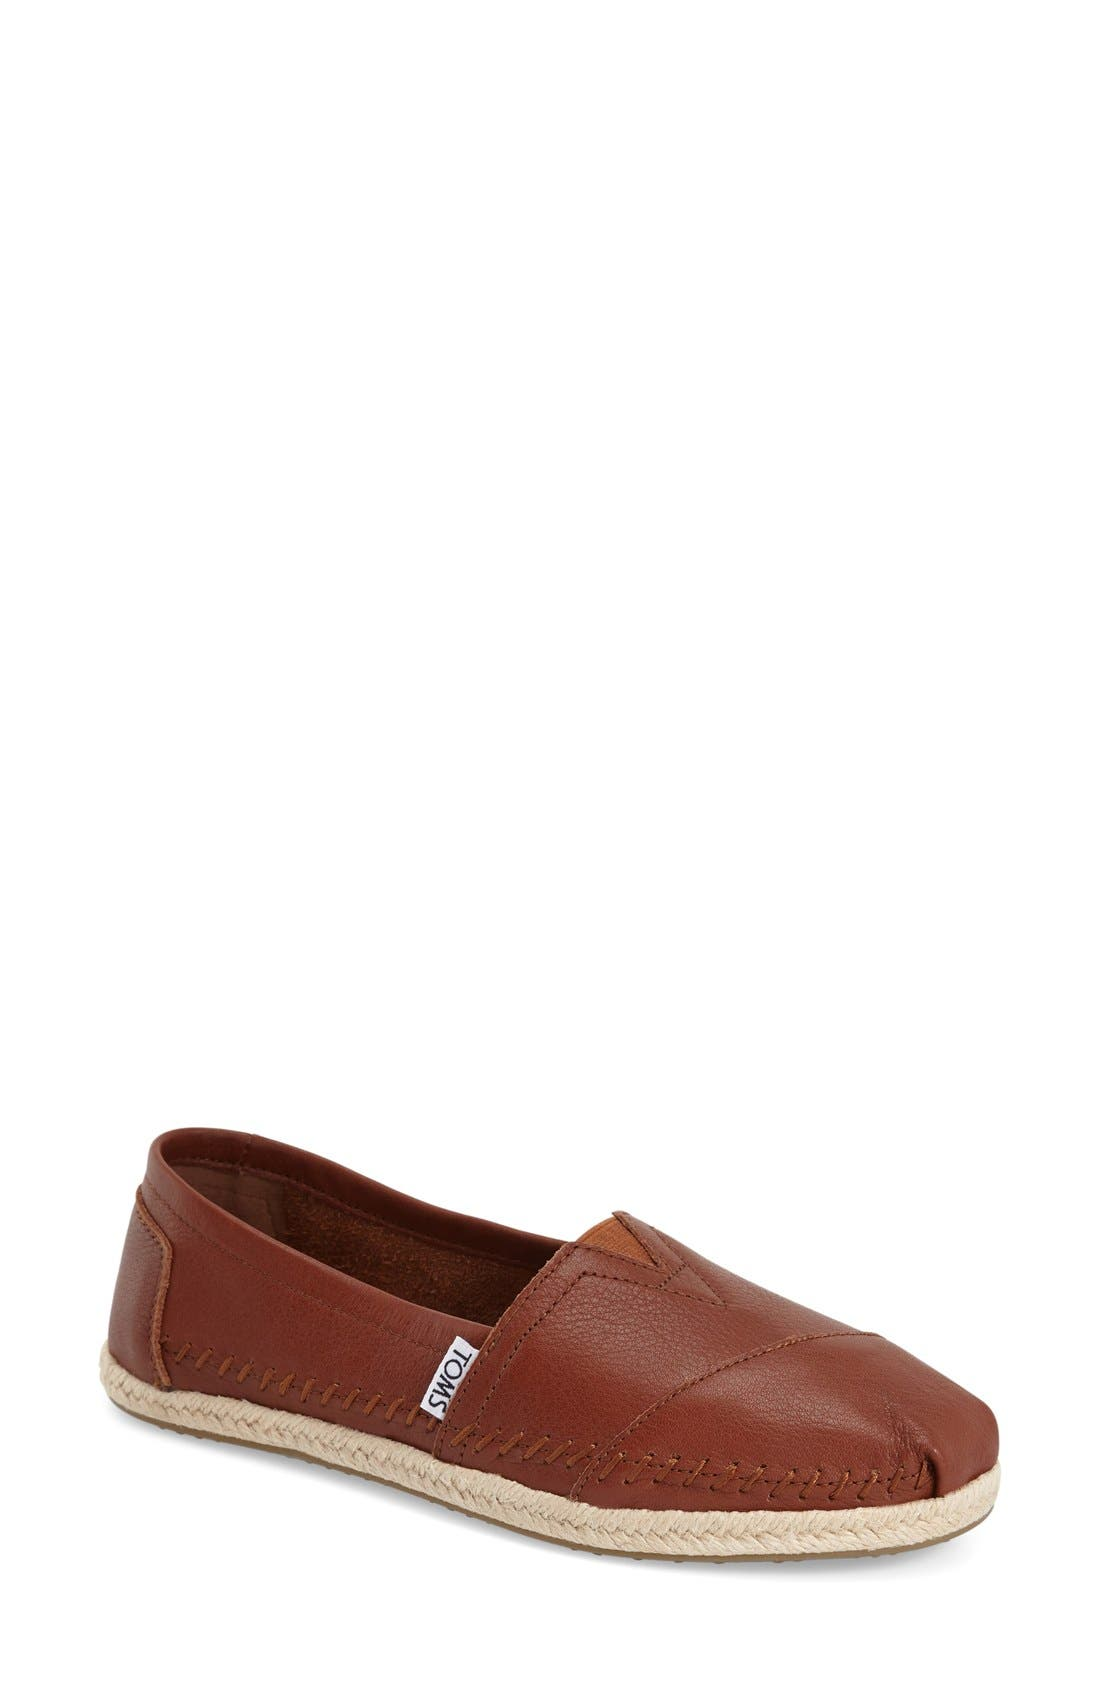 TOMS Classic - Leather Espadrille Slip-On